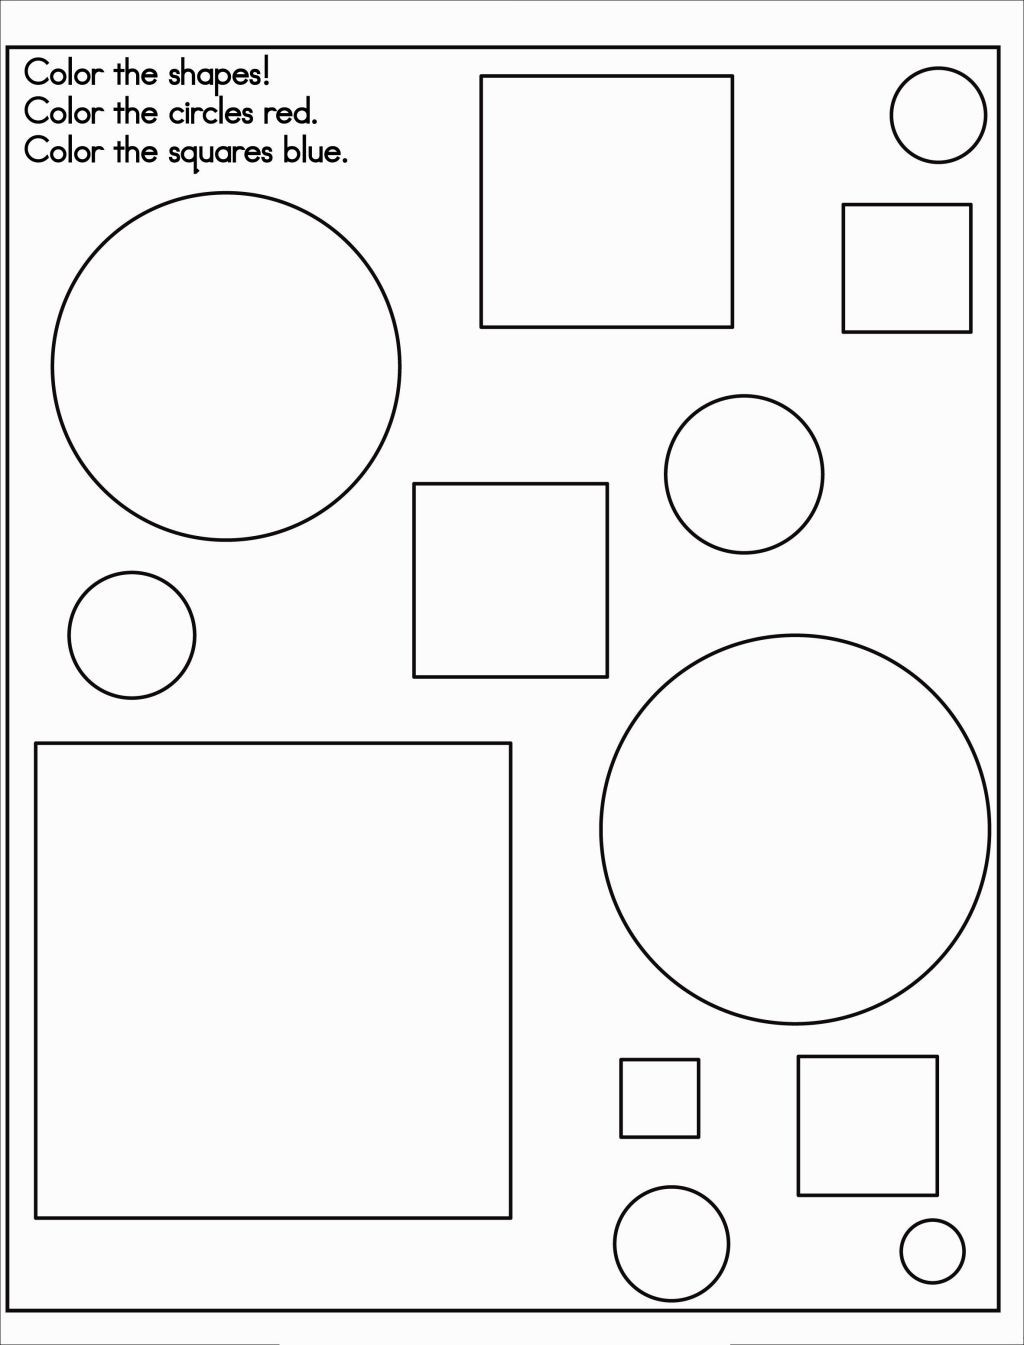 Coloring Page Shapes | Coloring Pages | Pinterest | Shapes